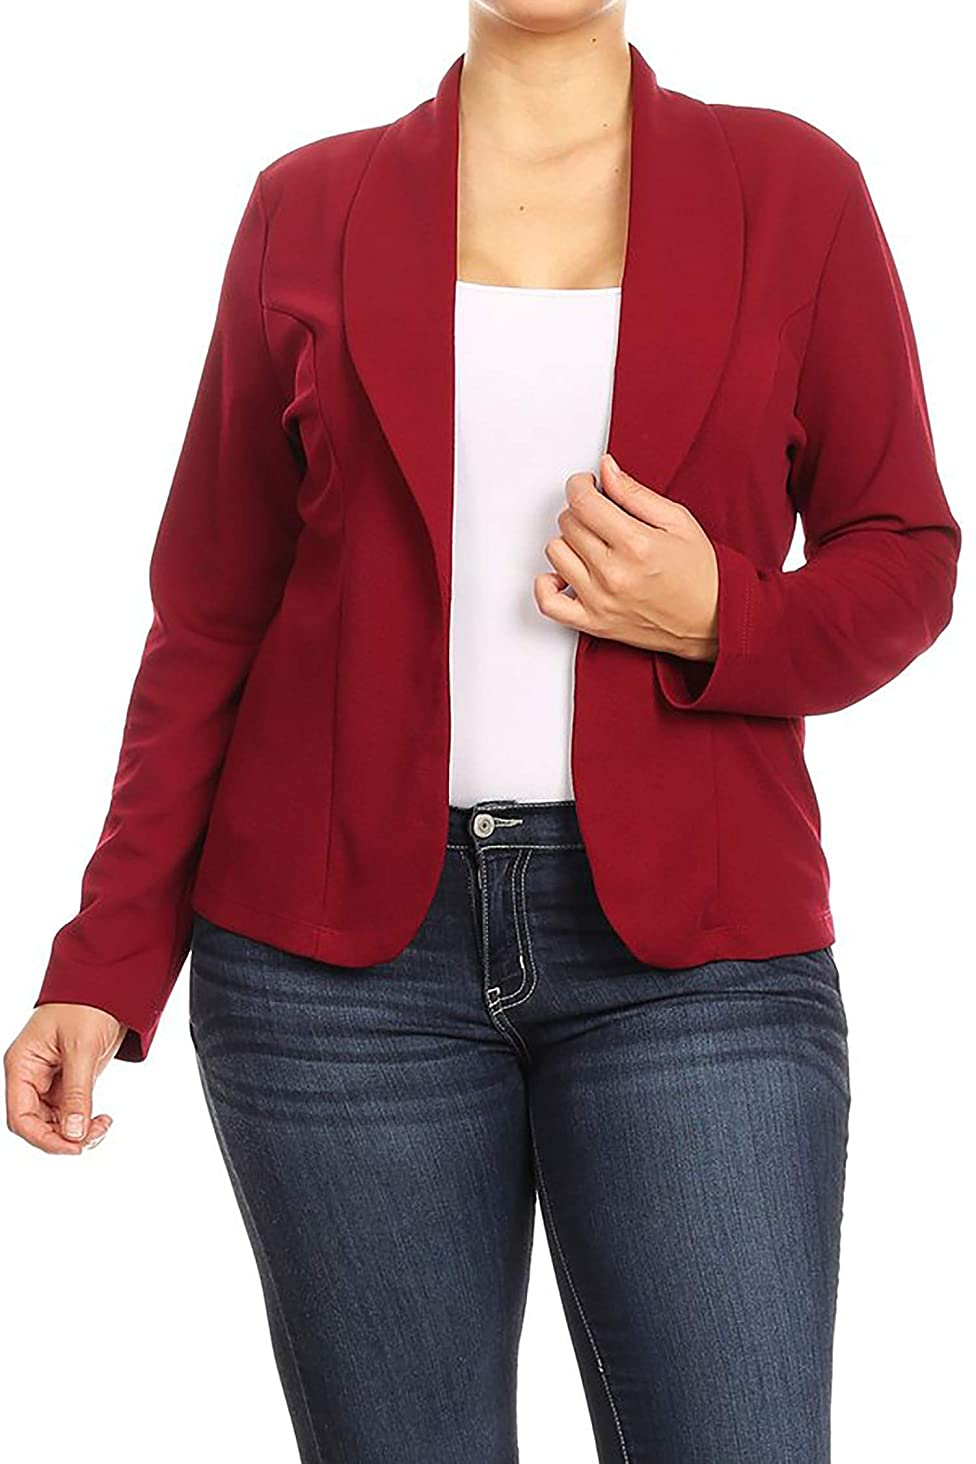 Women's Plus Size Casual Solid Basic Long Sleeve Blazer Cardigan Jacket/Made in USA